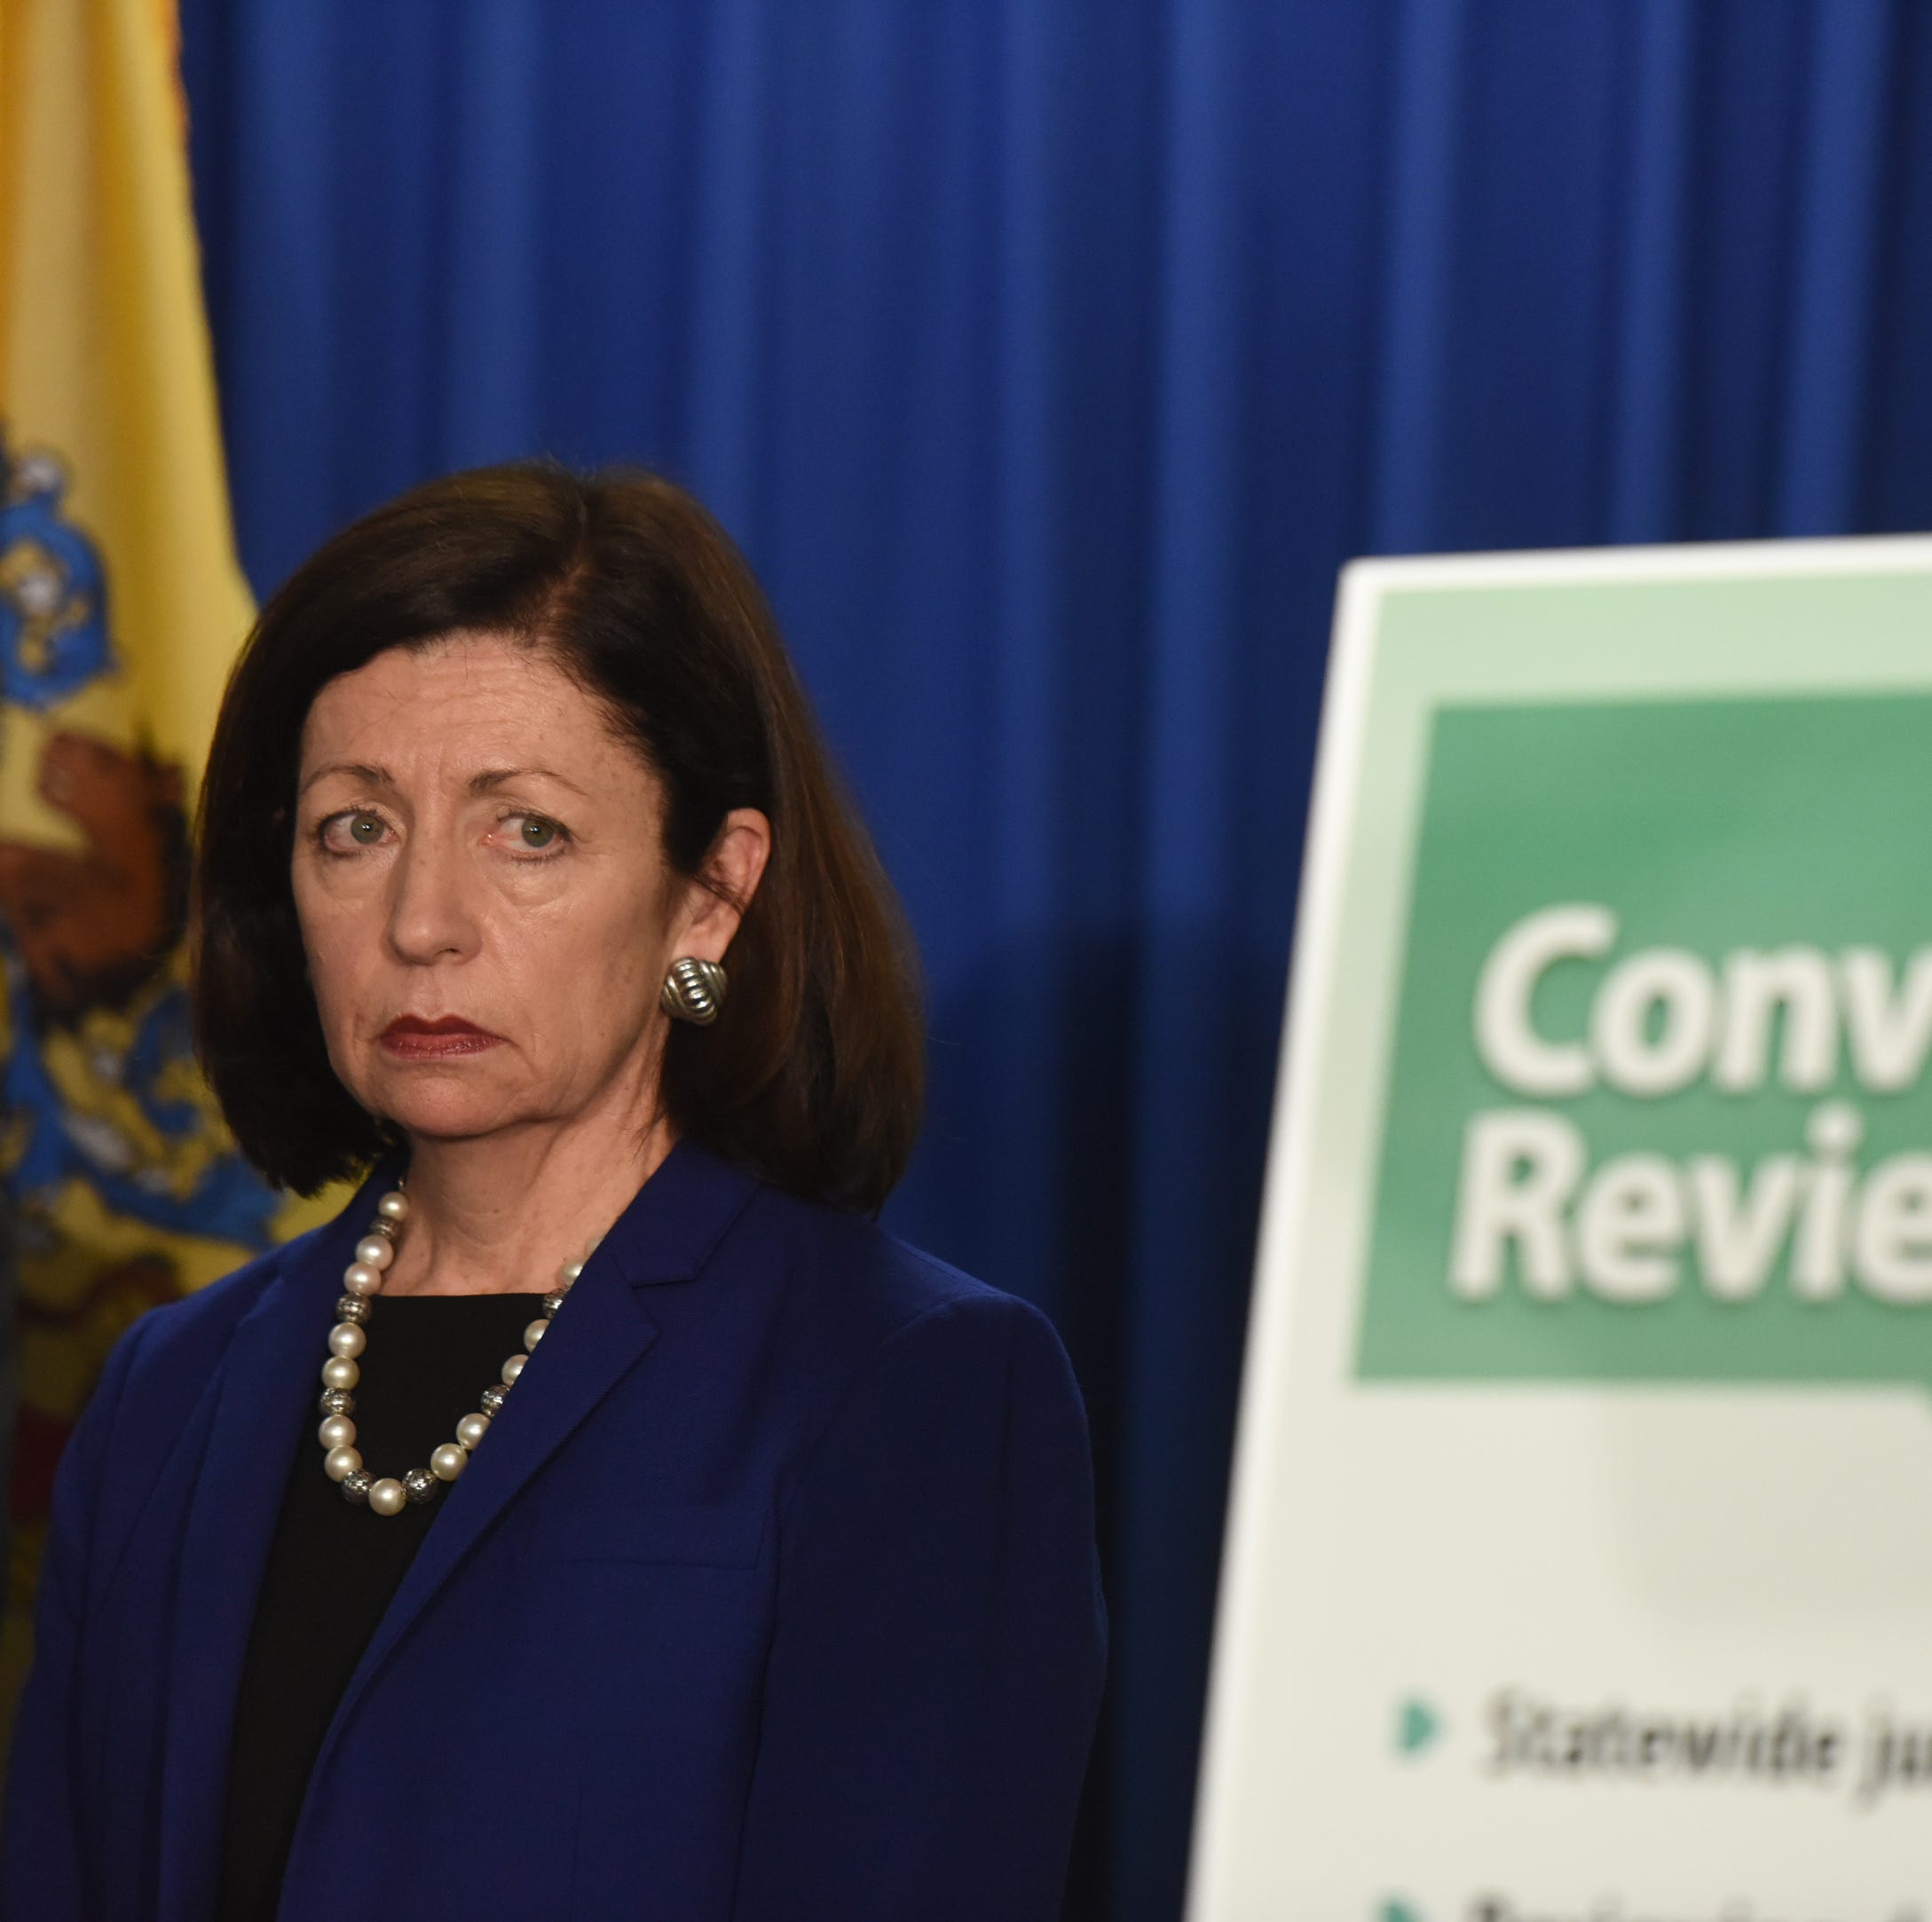 NJ taking the lead on righting wrongful convictions | Editorial